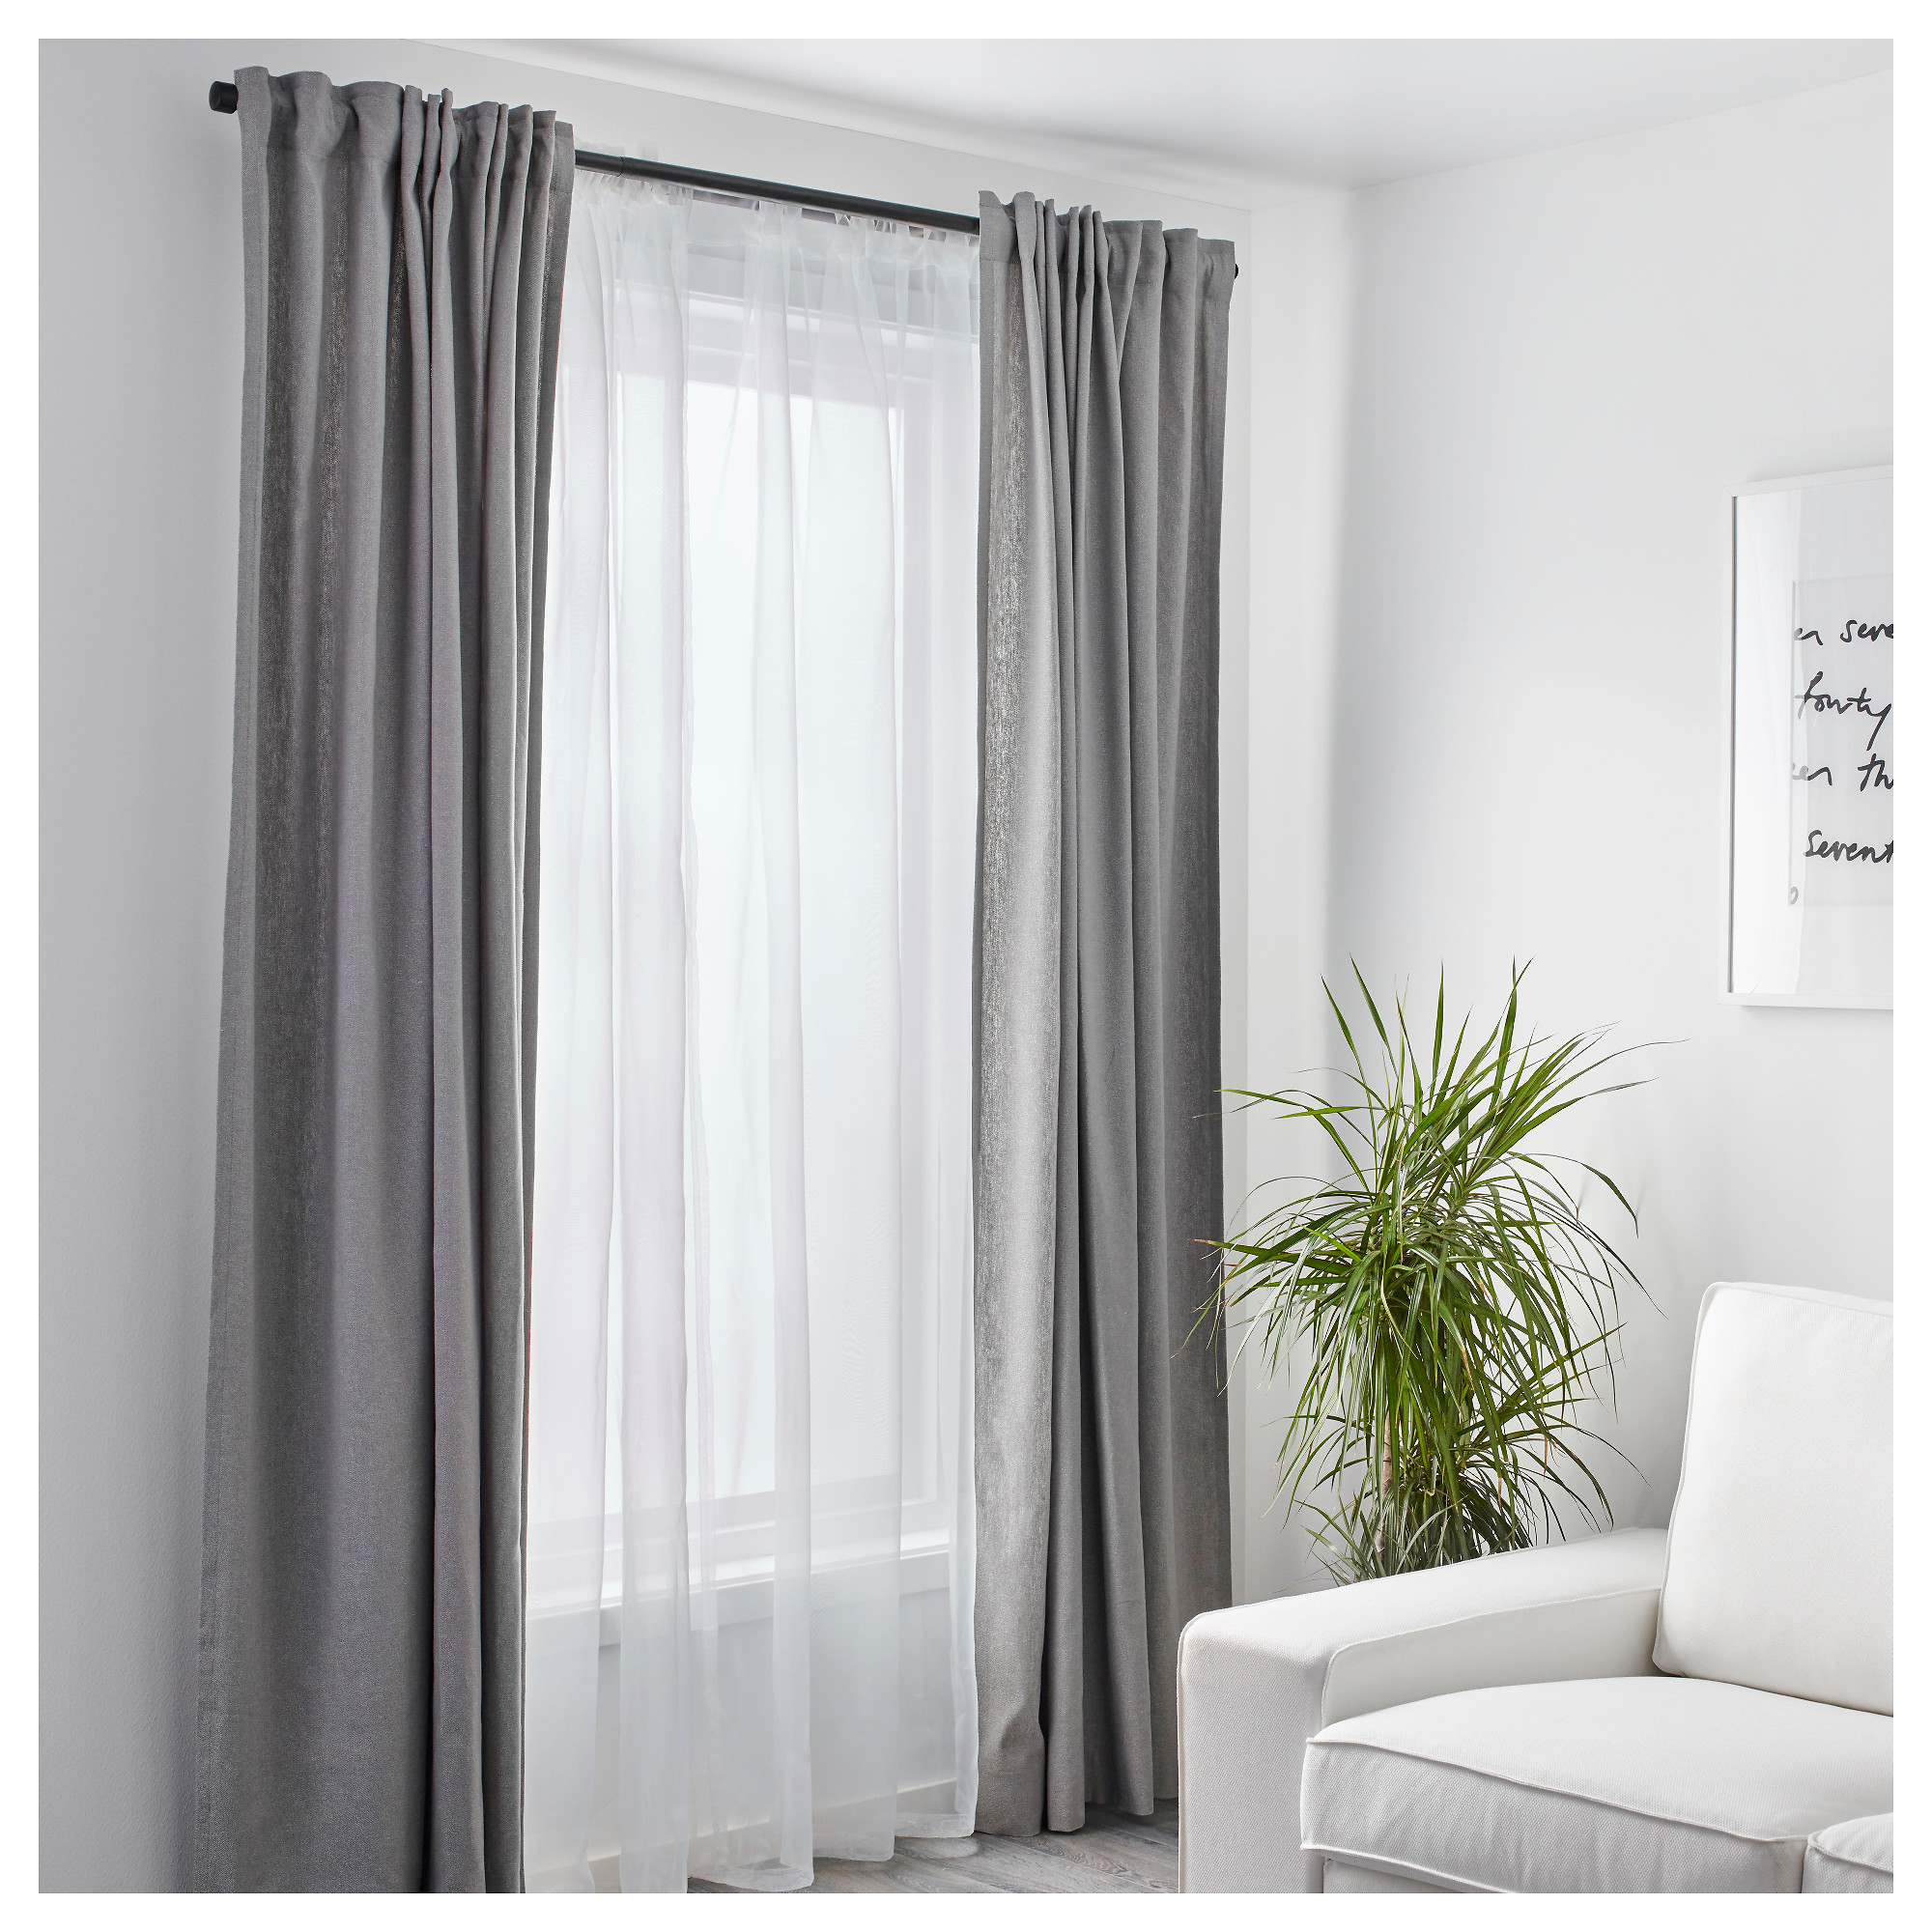 Privacy Curtain For Bedroom Ikea Latvia Shop For Furniture Lighting Home Accessories More